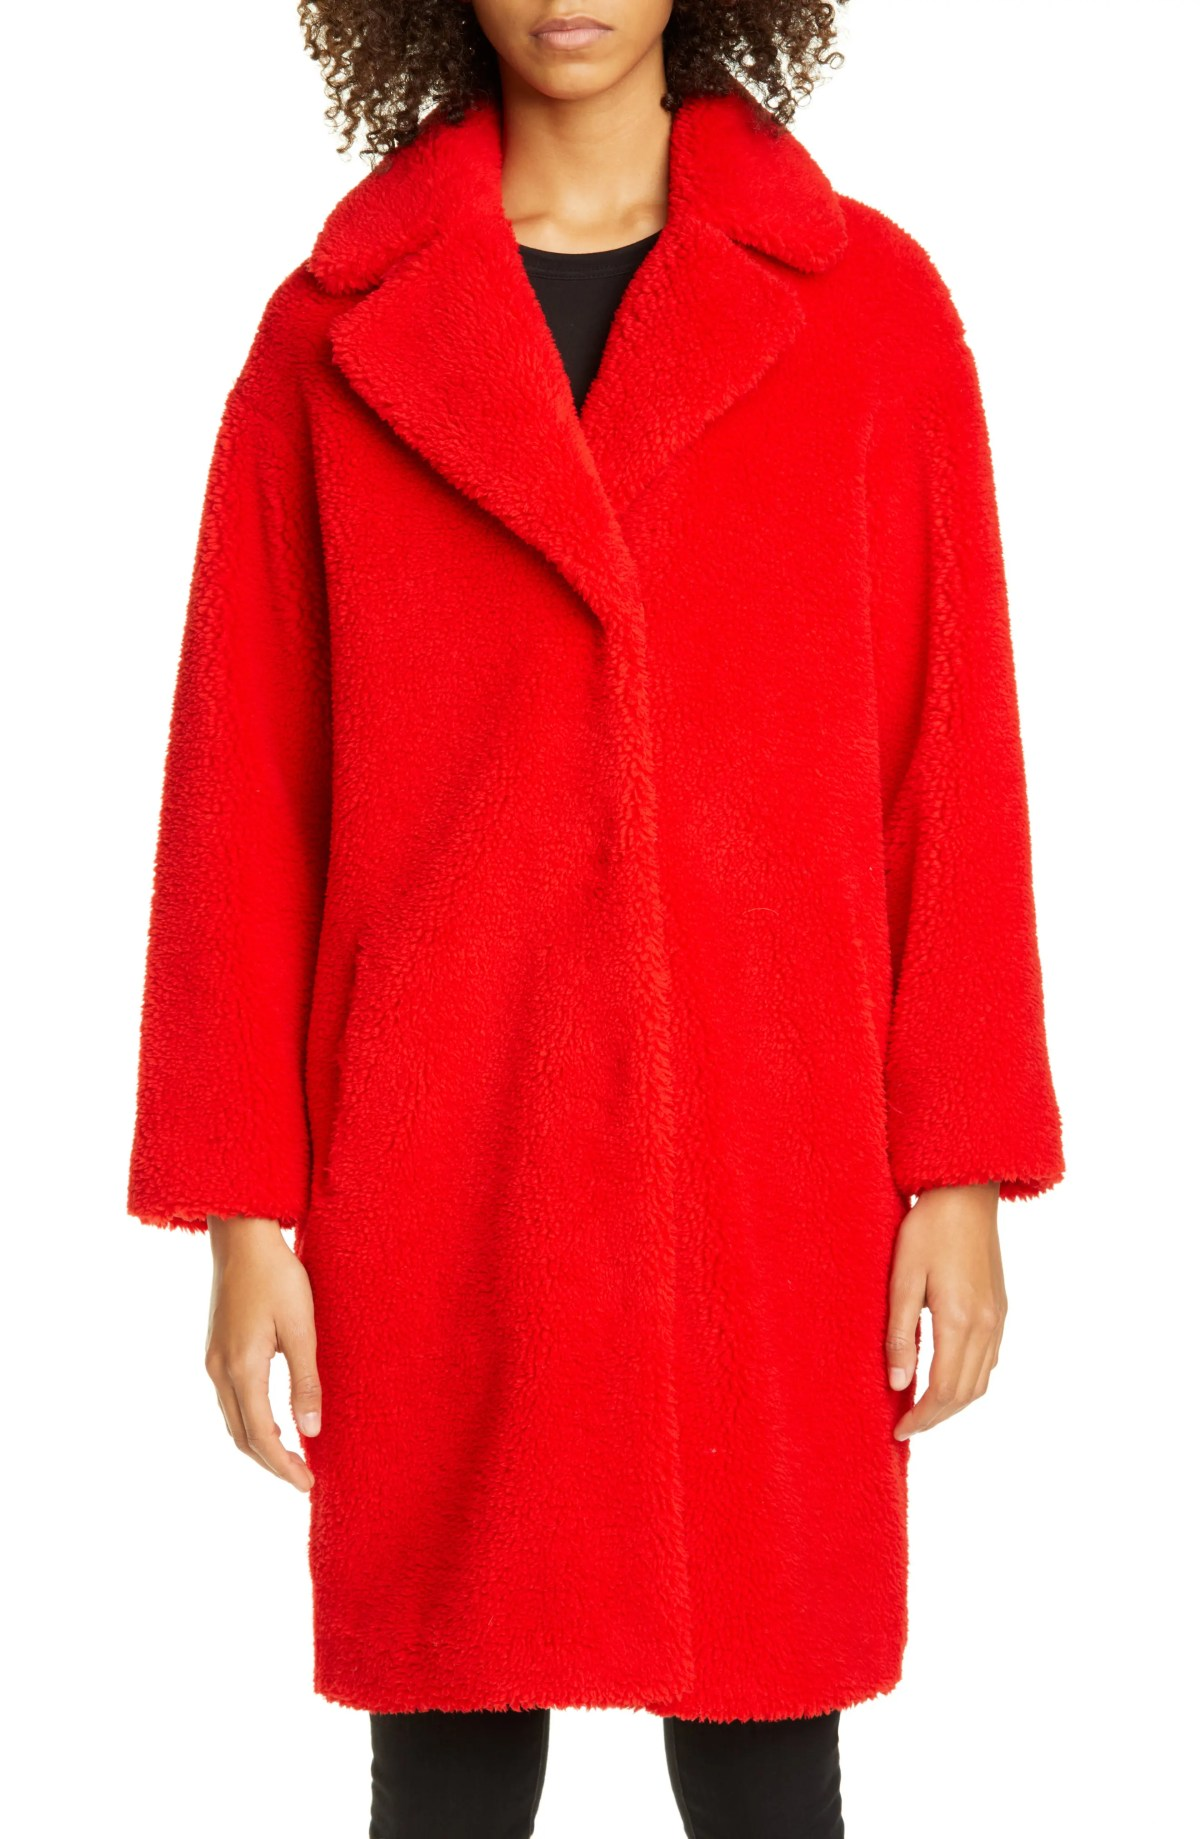 STAND STUDIO Camille Teddy Faux Fur Cocoon Coat, Main, color, 2500 RED